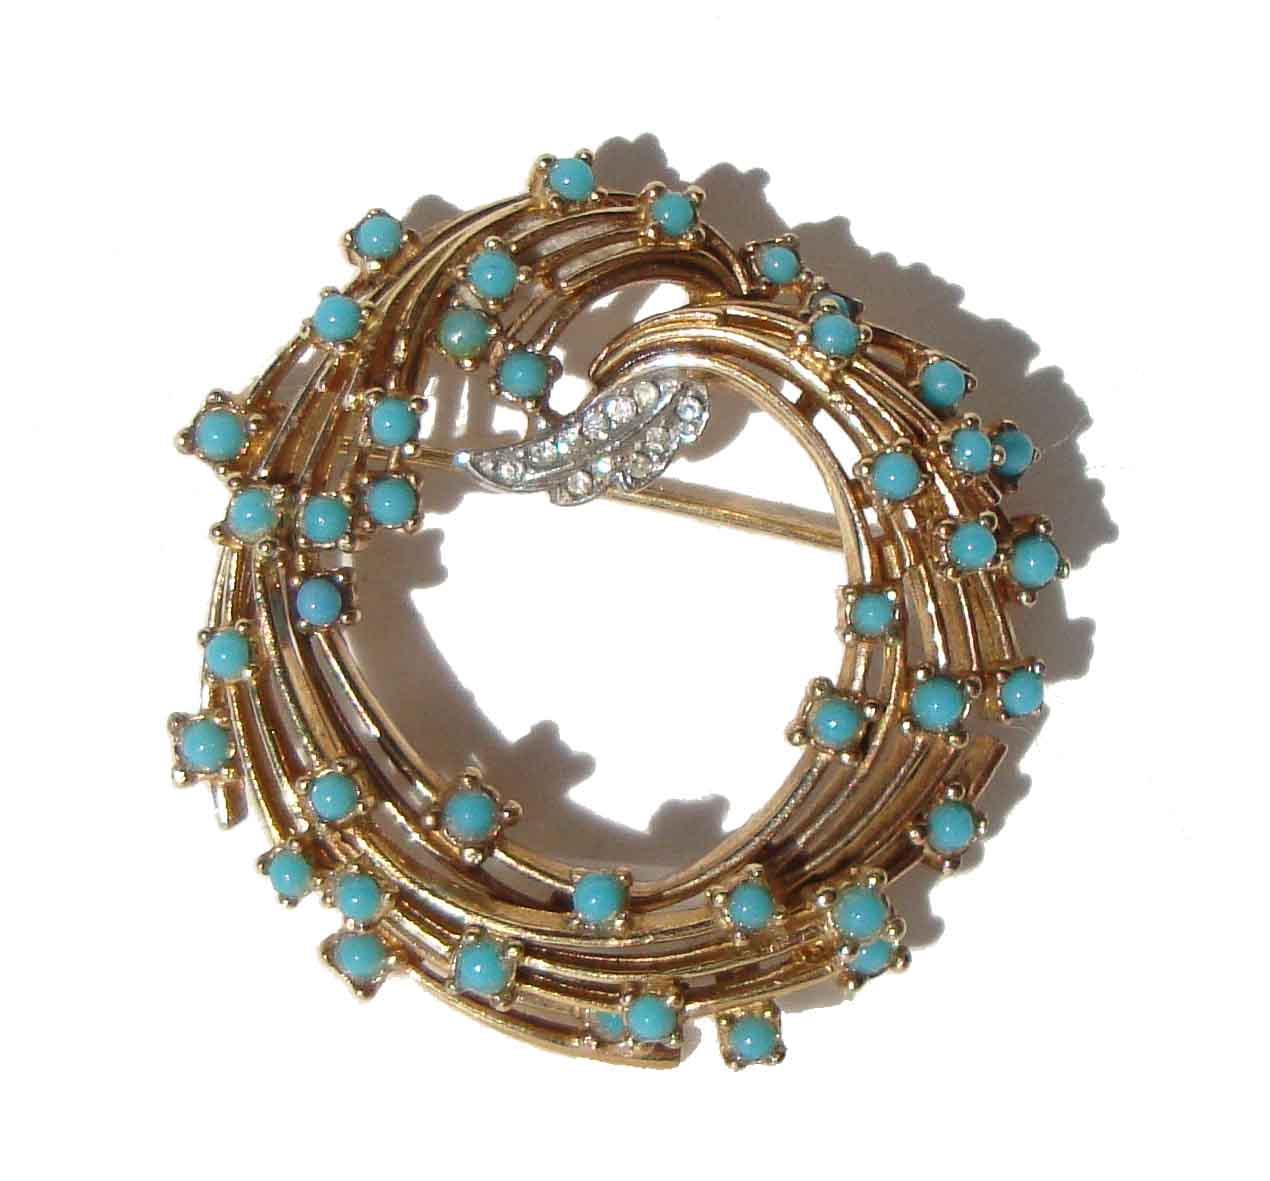 Vintage Ciner Brooch Turquoise & Rhinestone Cocktail Wreath Pin